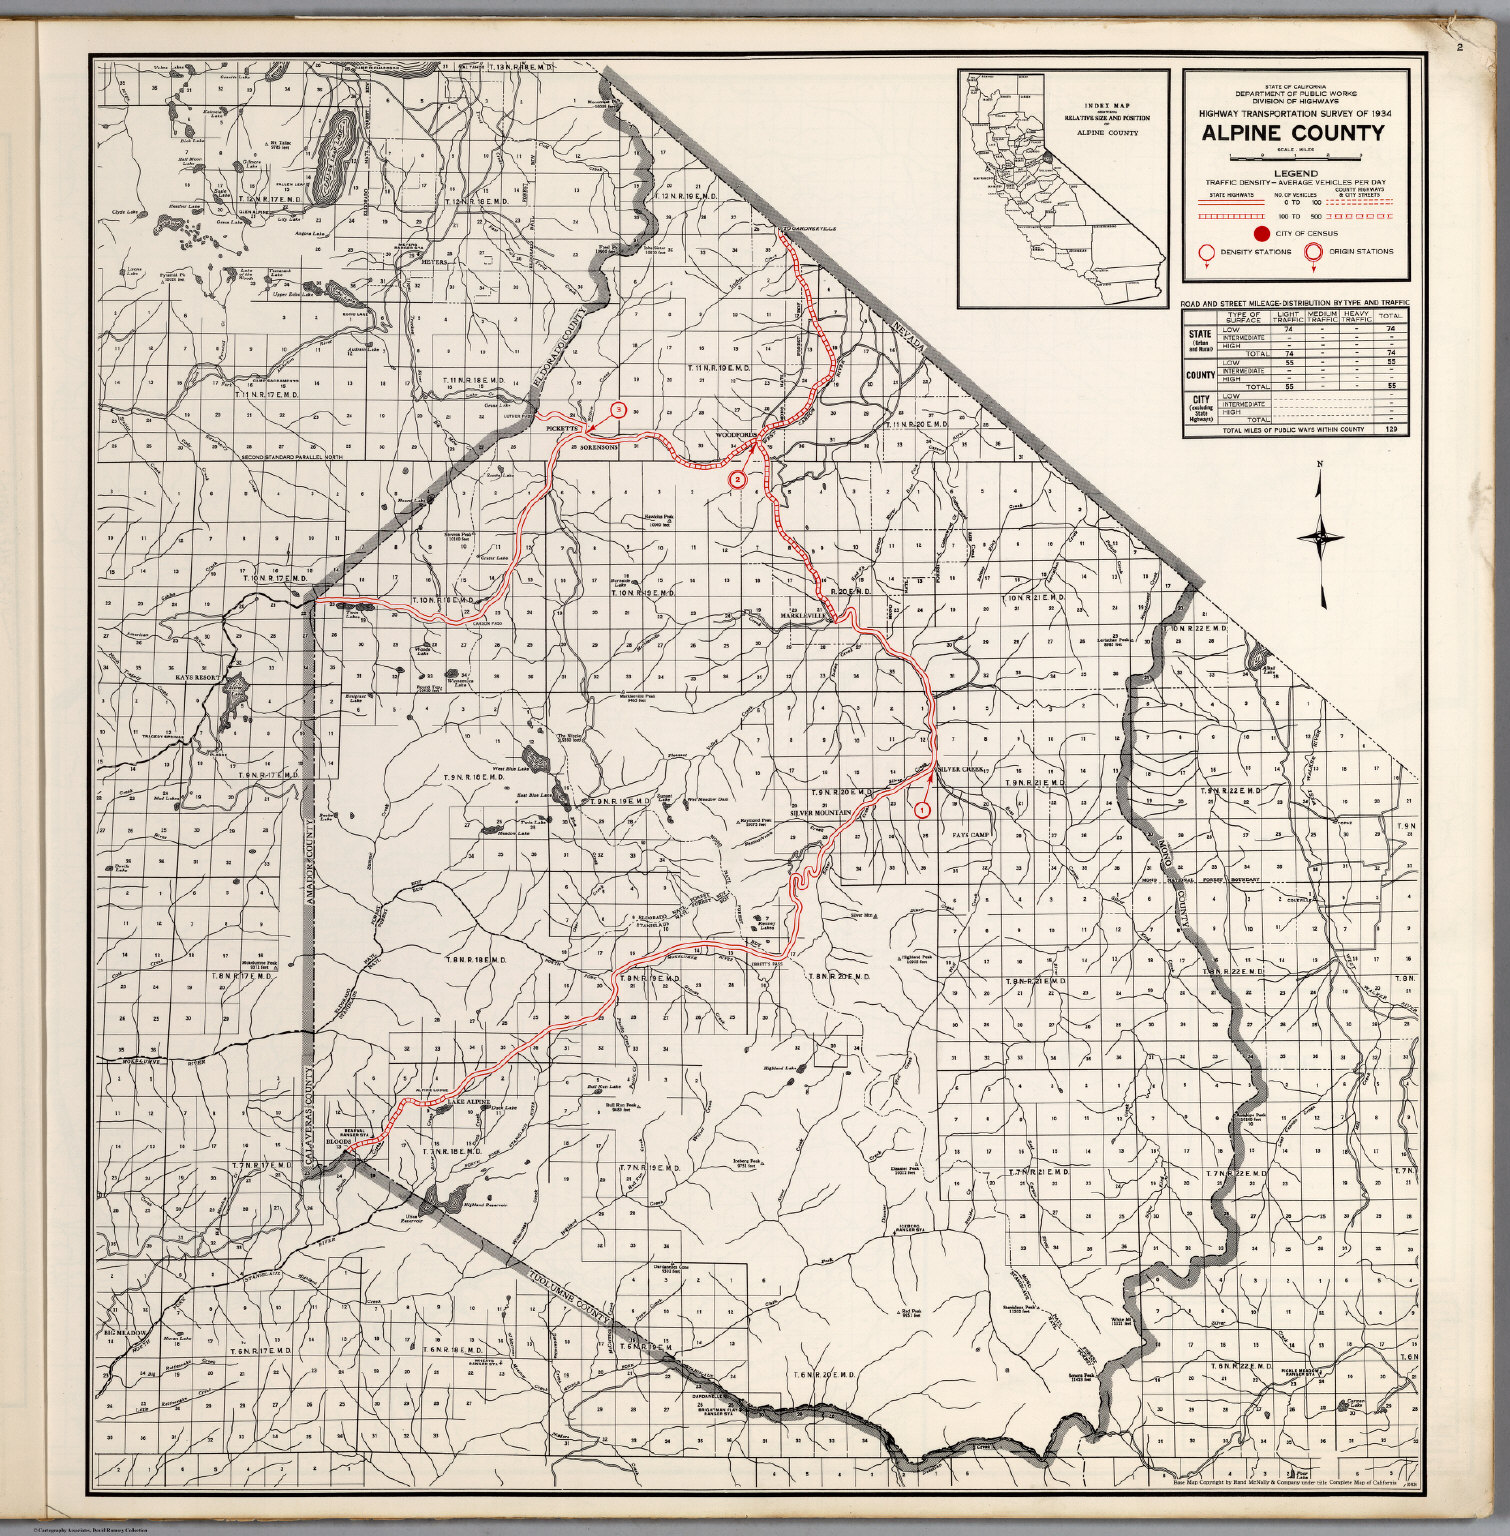 Alpine County David Rumsey Historical Map Collection